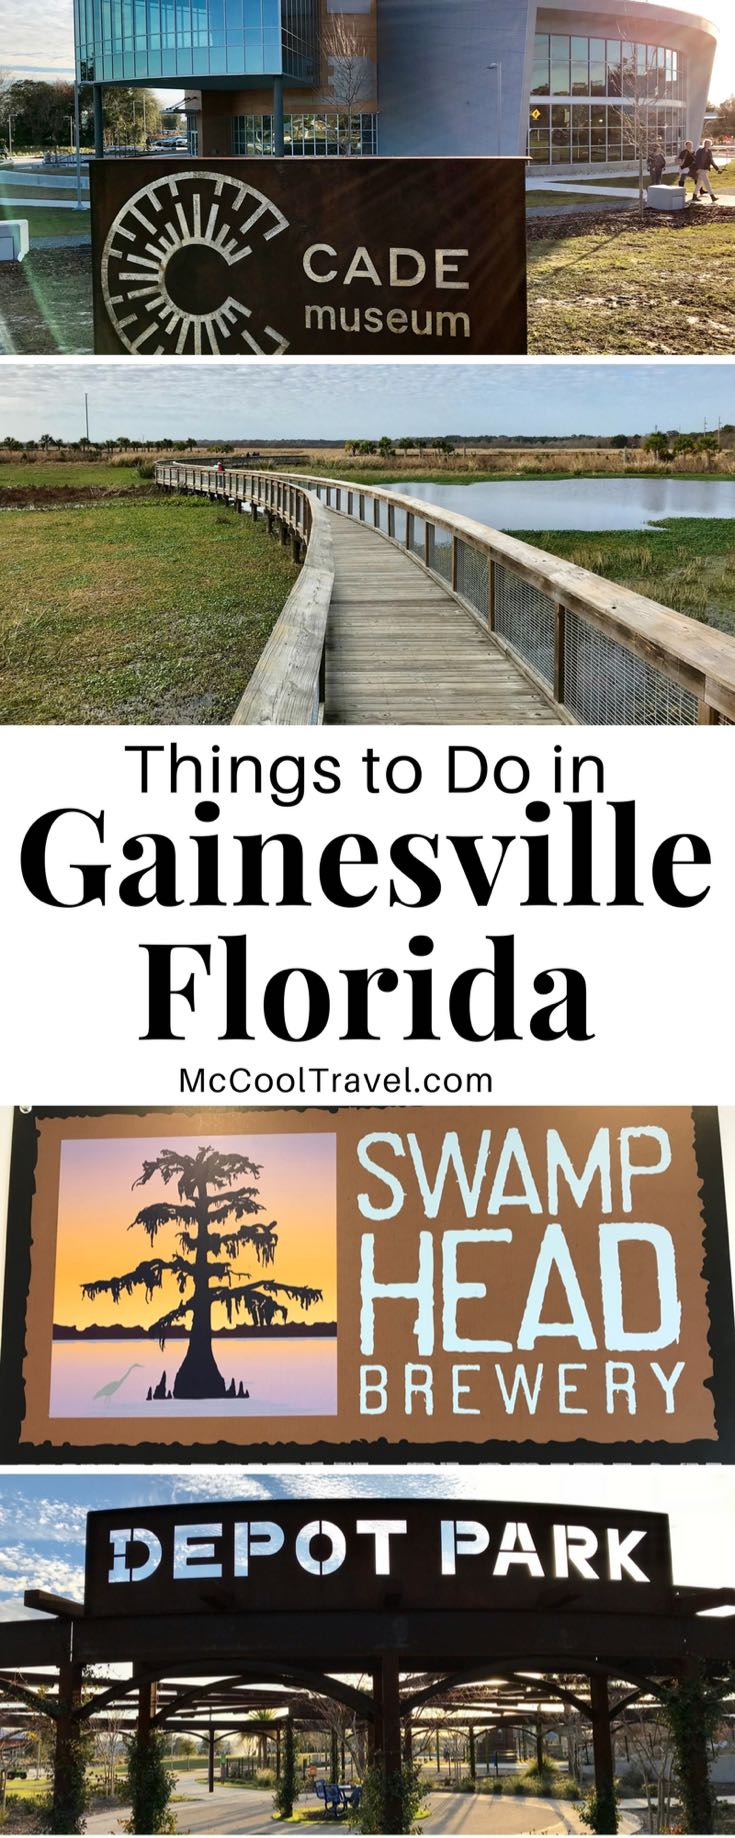 Gainesville Florida USA Travel. Things to do in Gainesville Florida includes arts, food, hiking, fun events, and more.